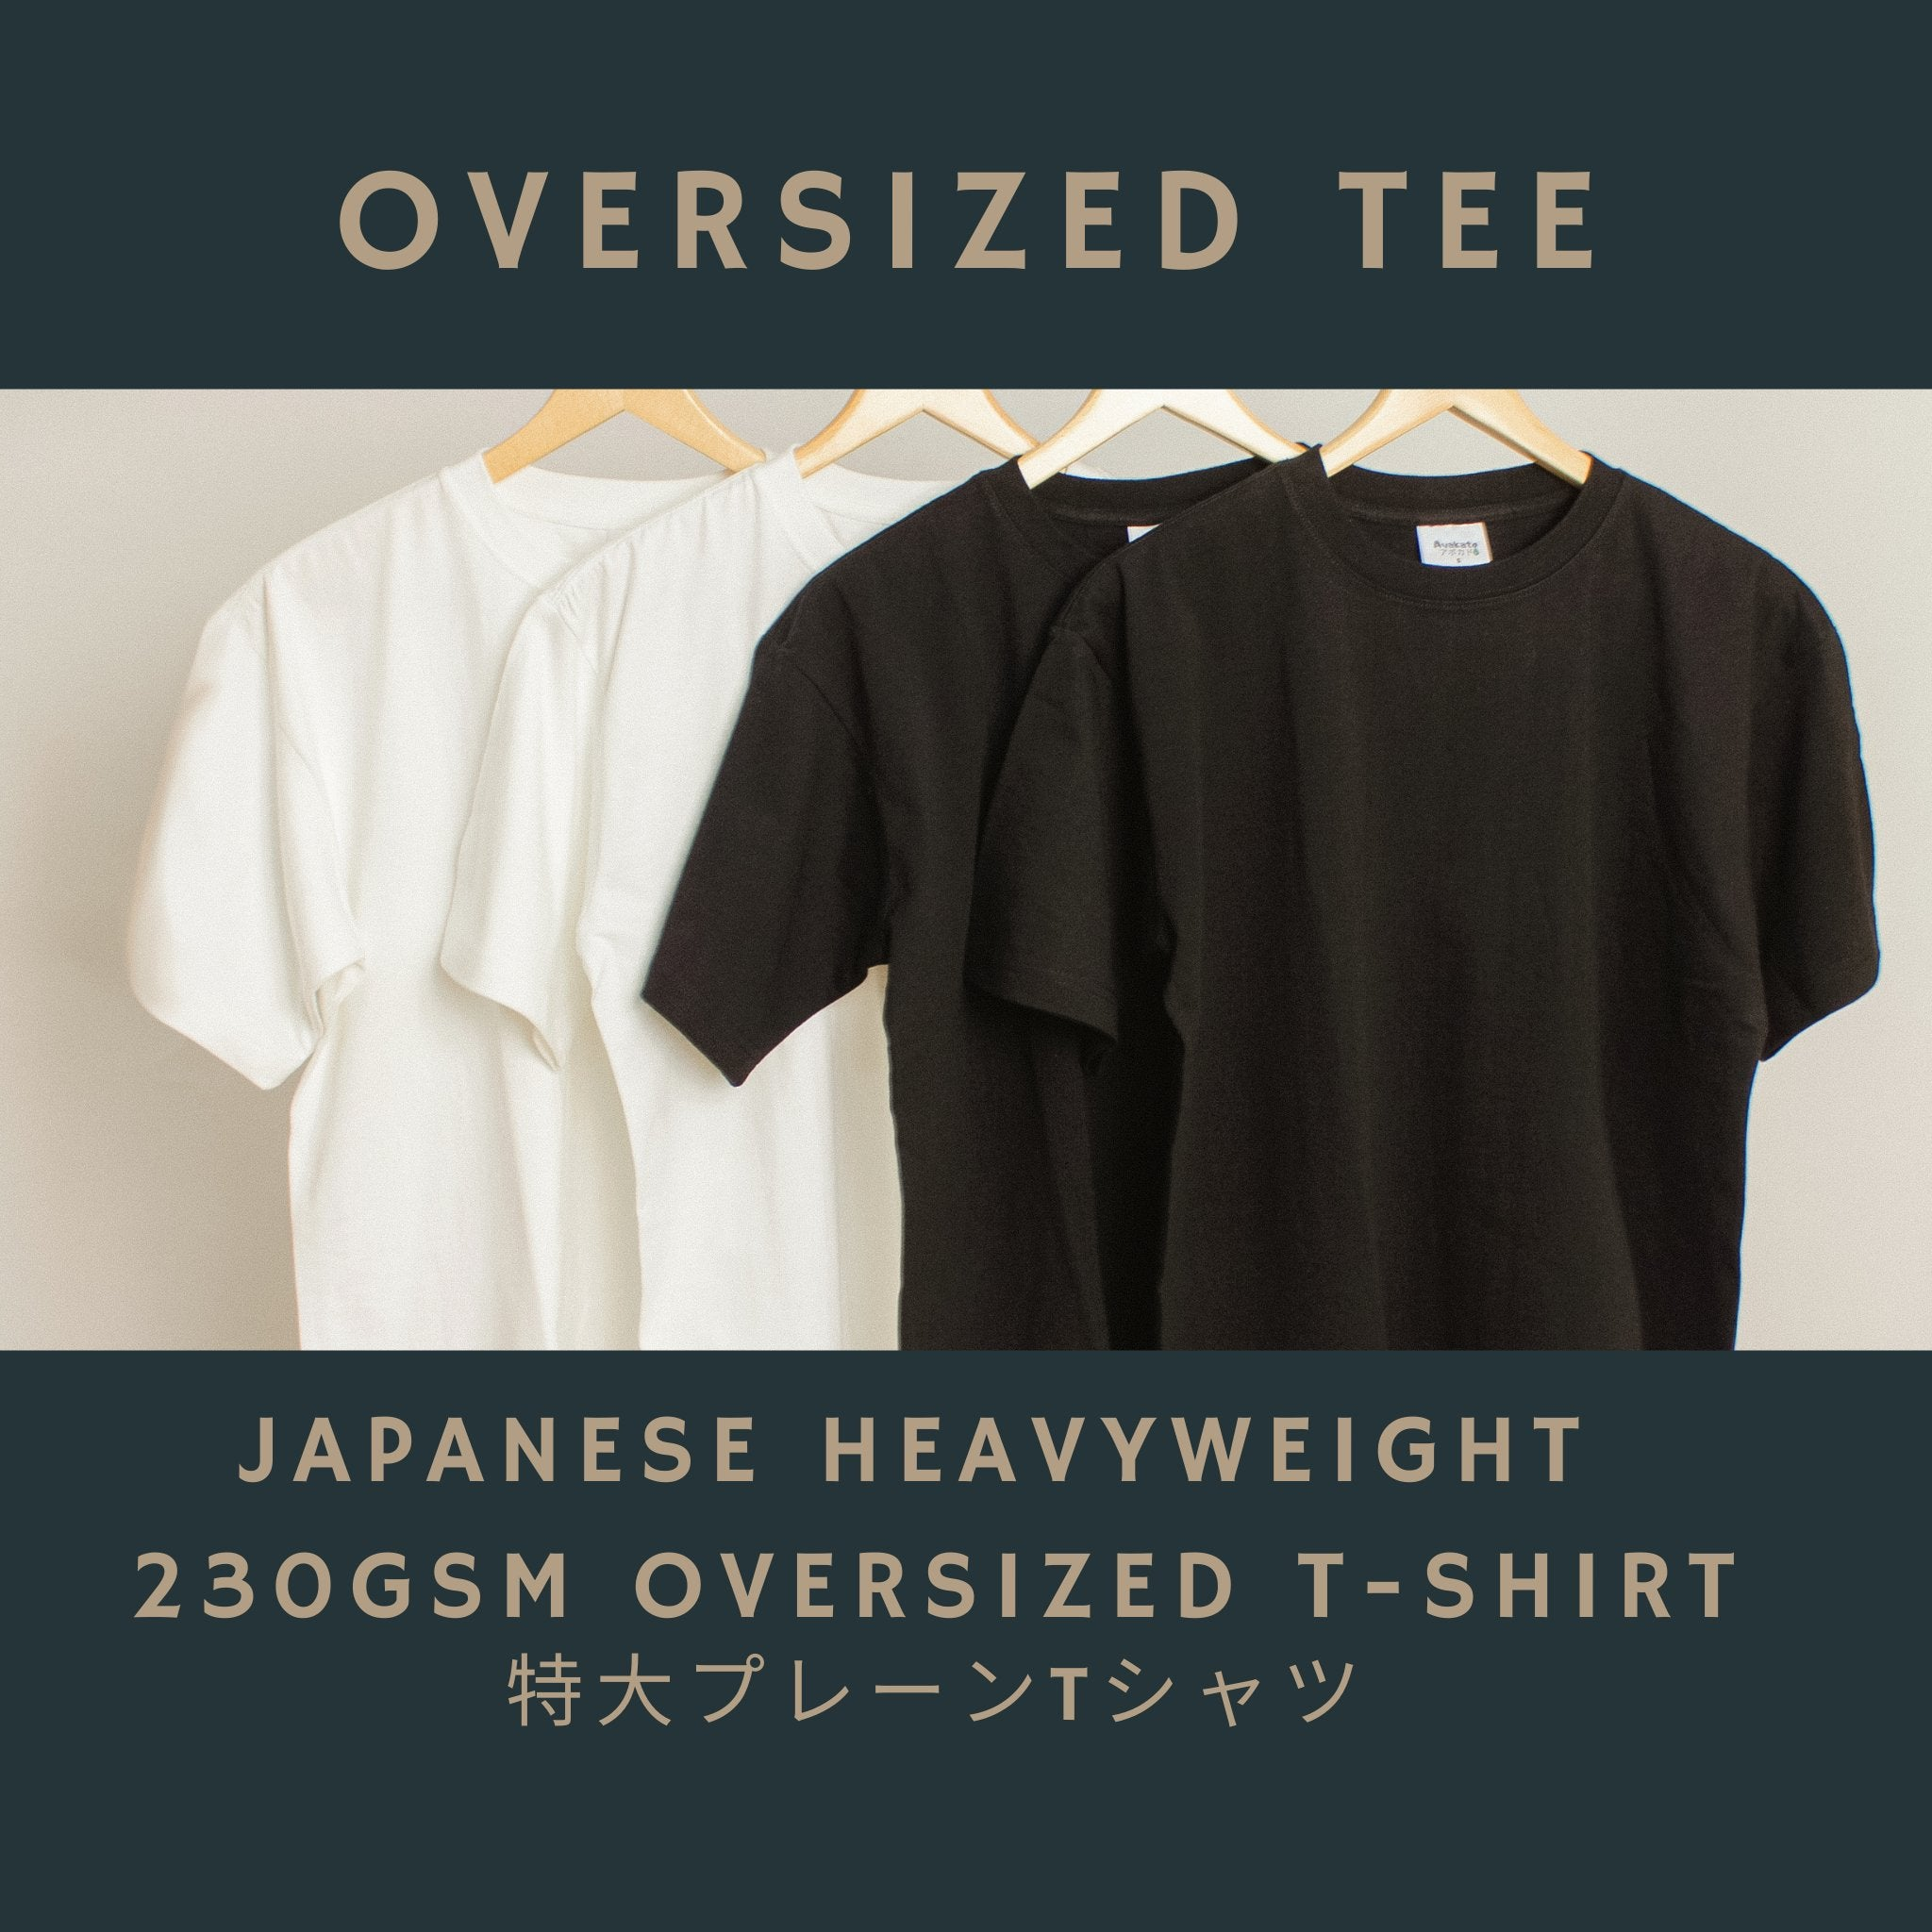 Japanese Heavyweight Oversized T-Shirt